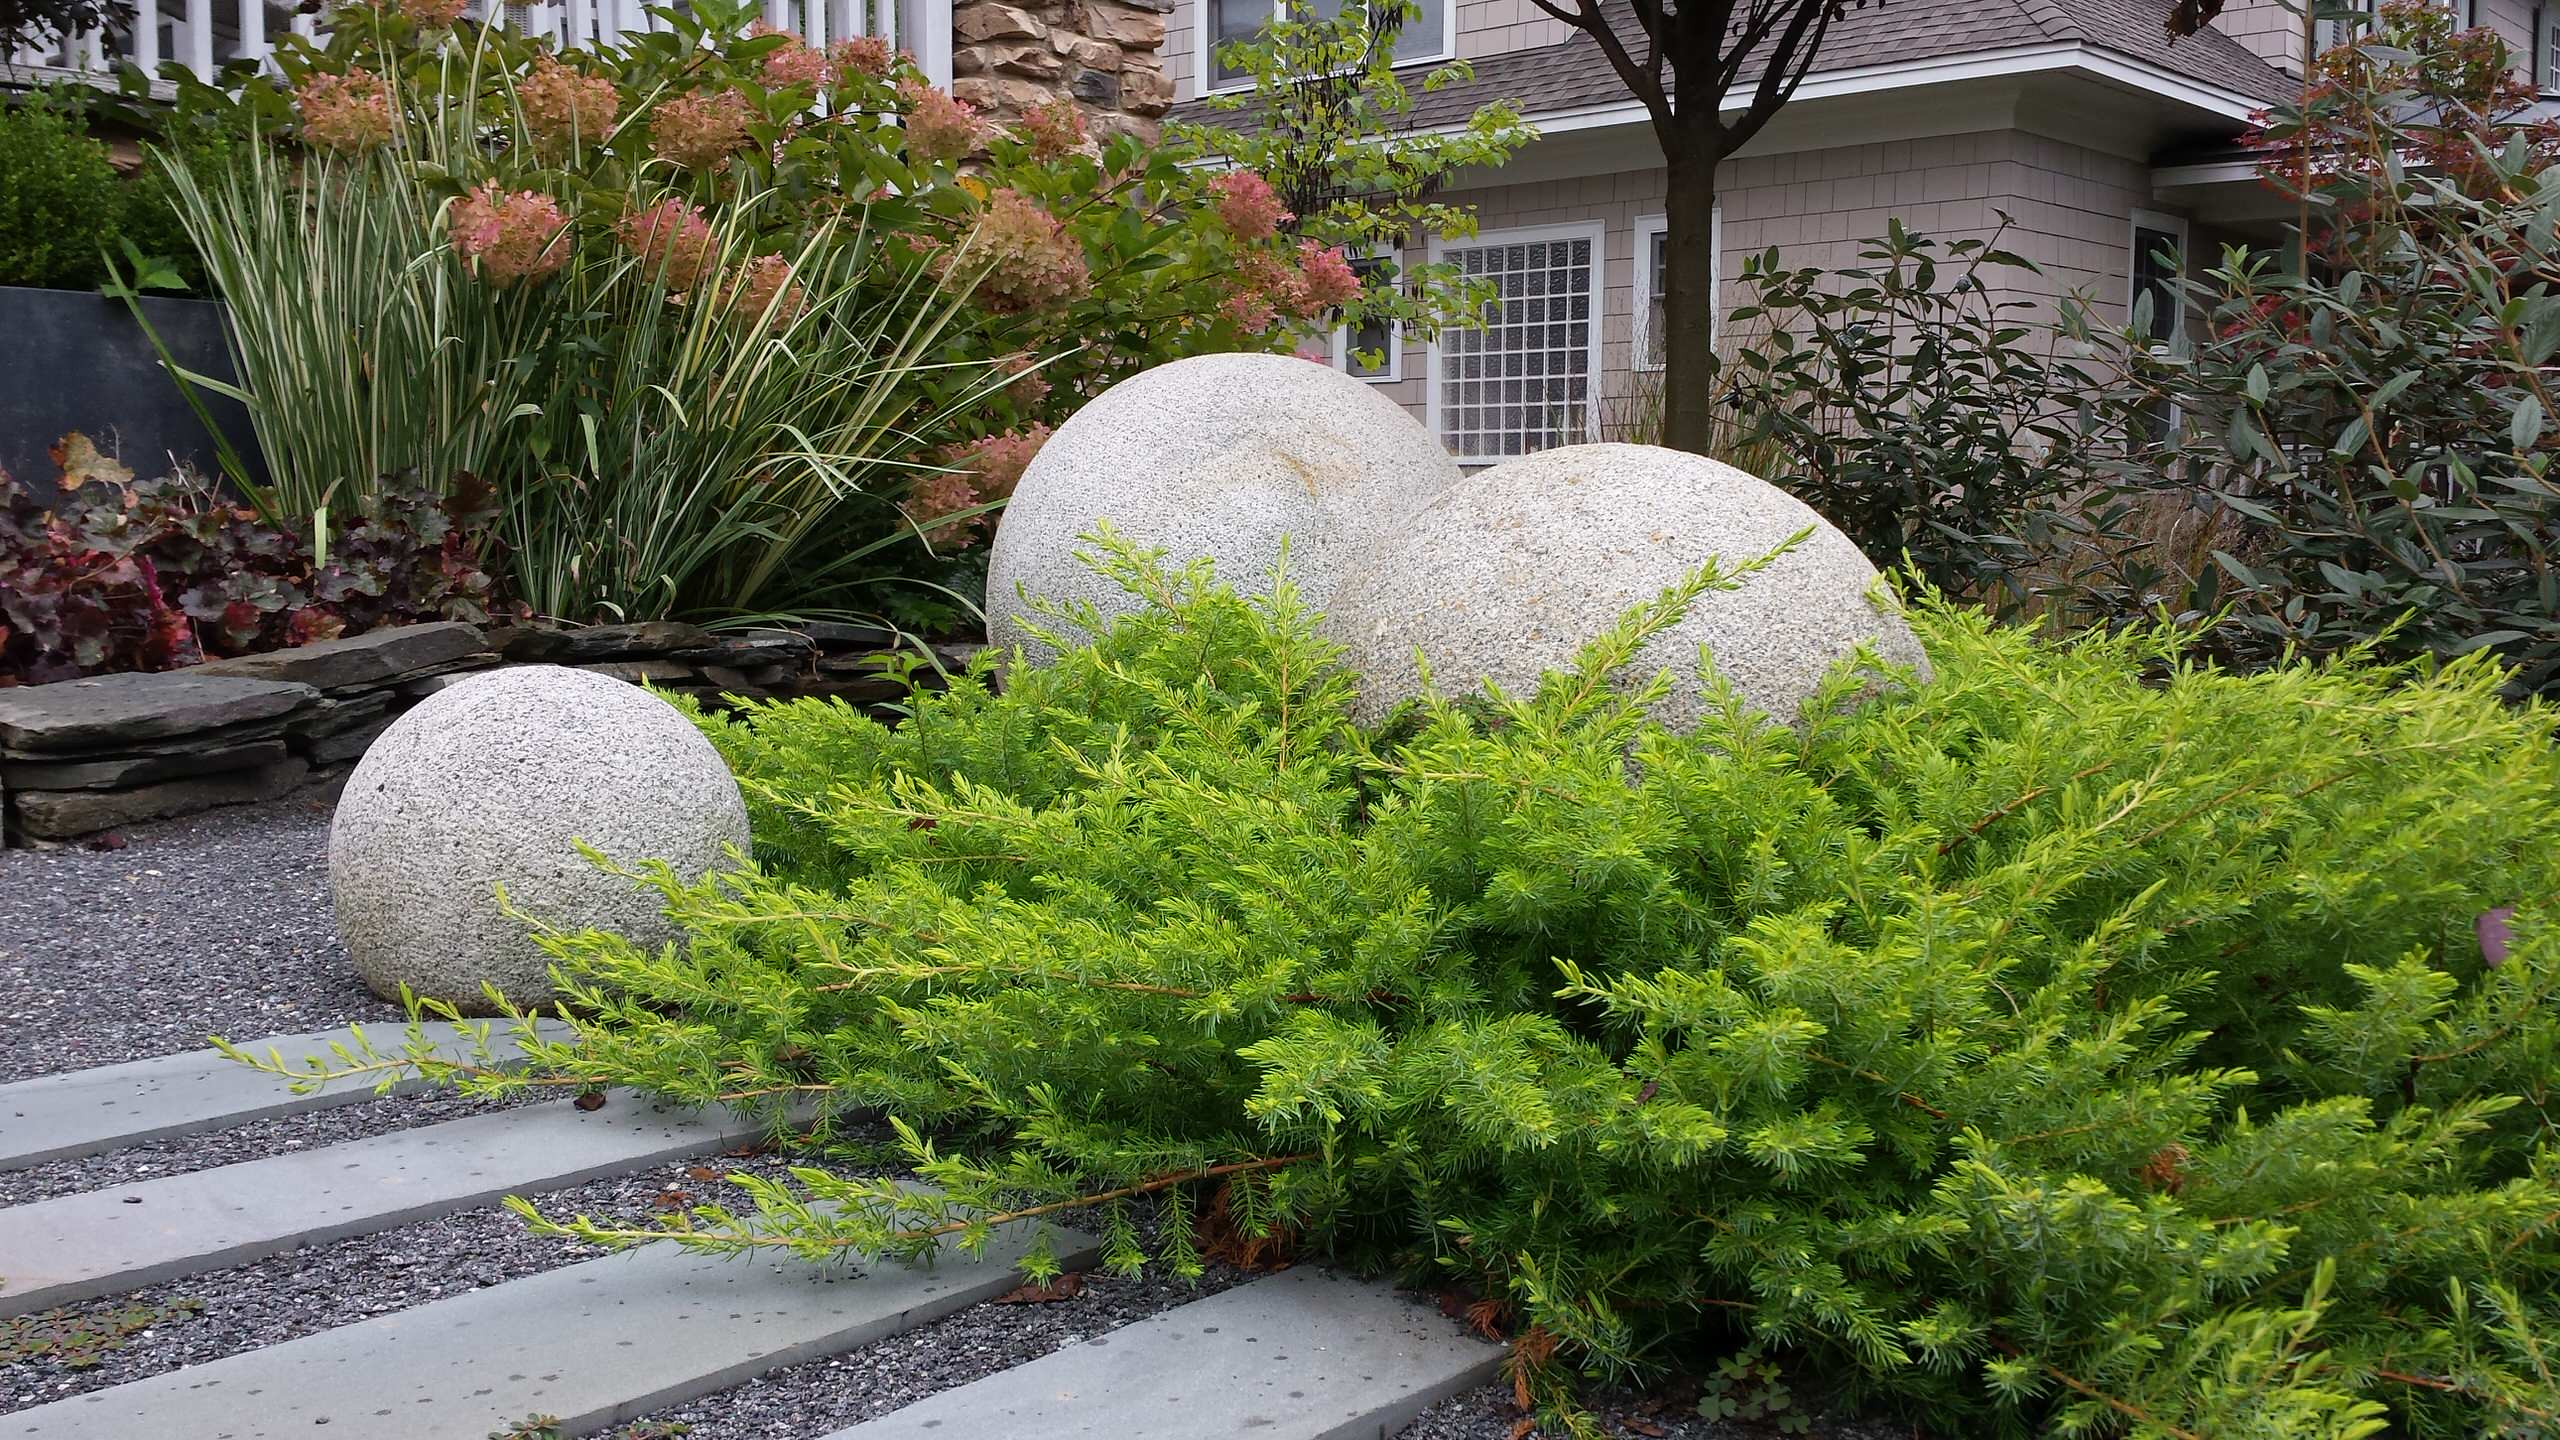 'All Gold' shore junipers with granite spheres.